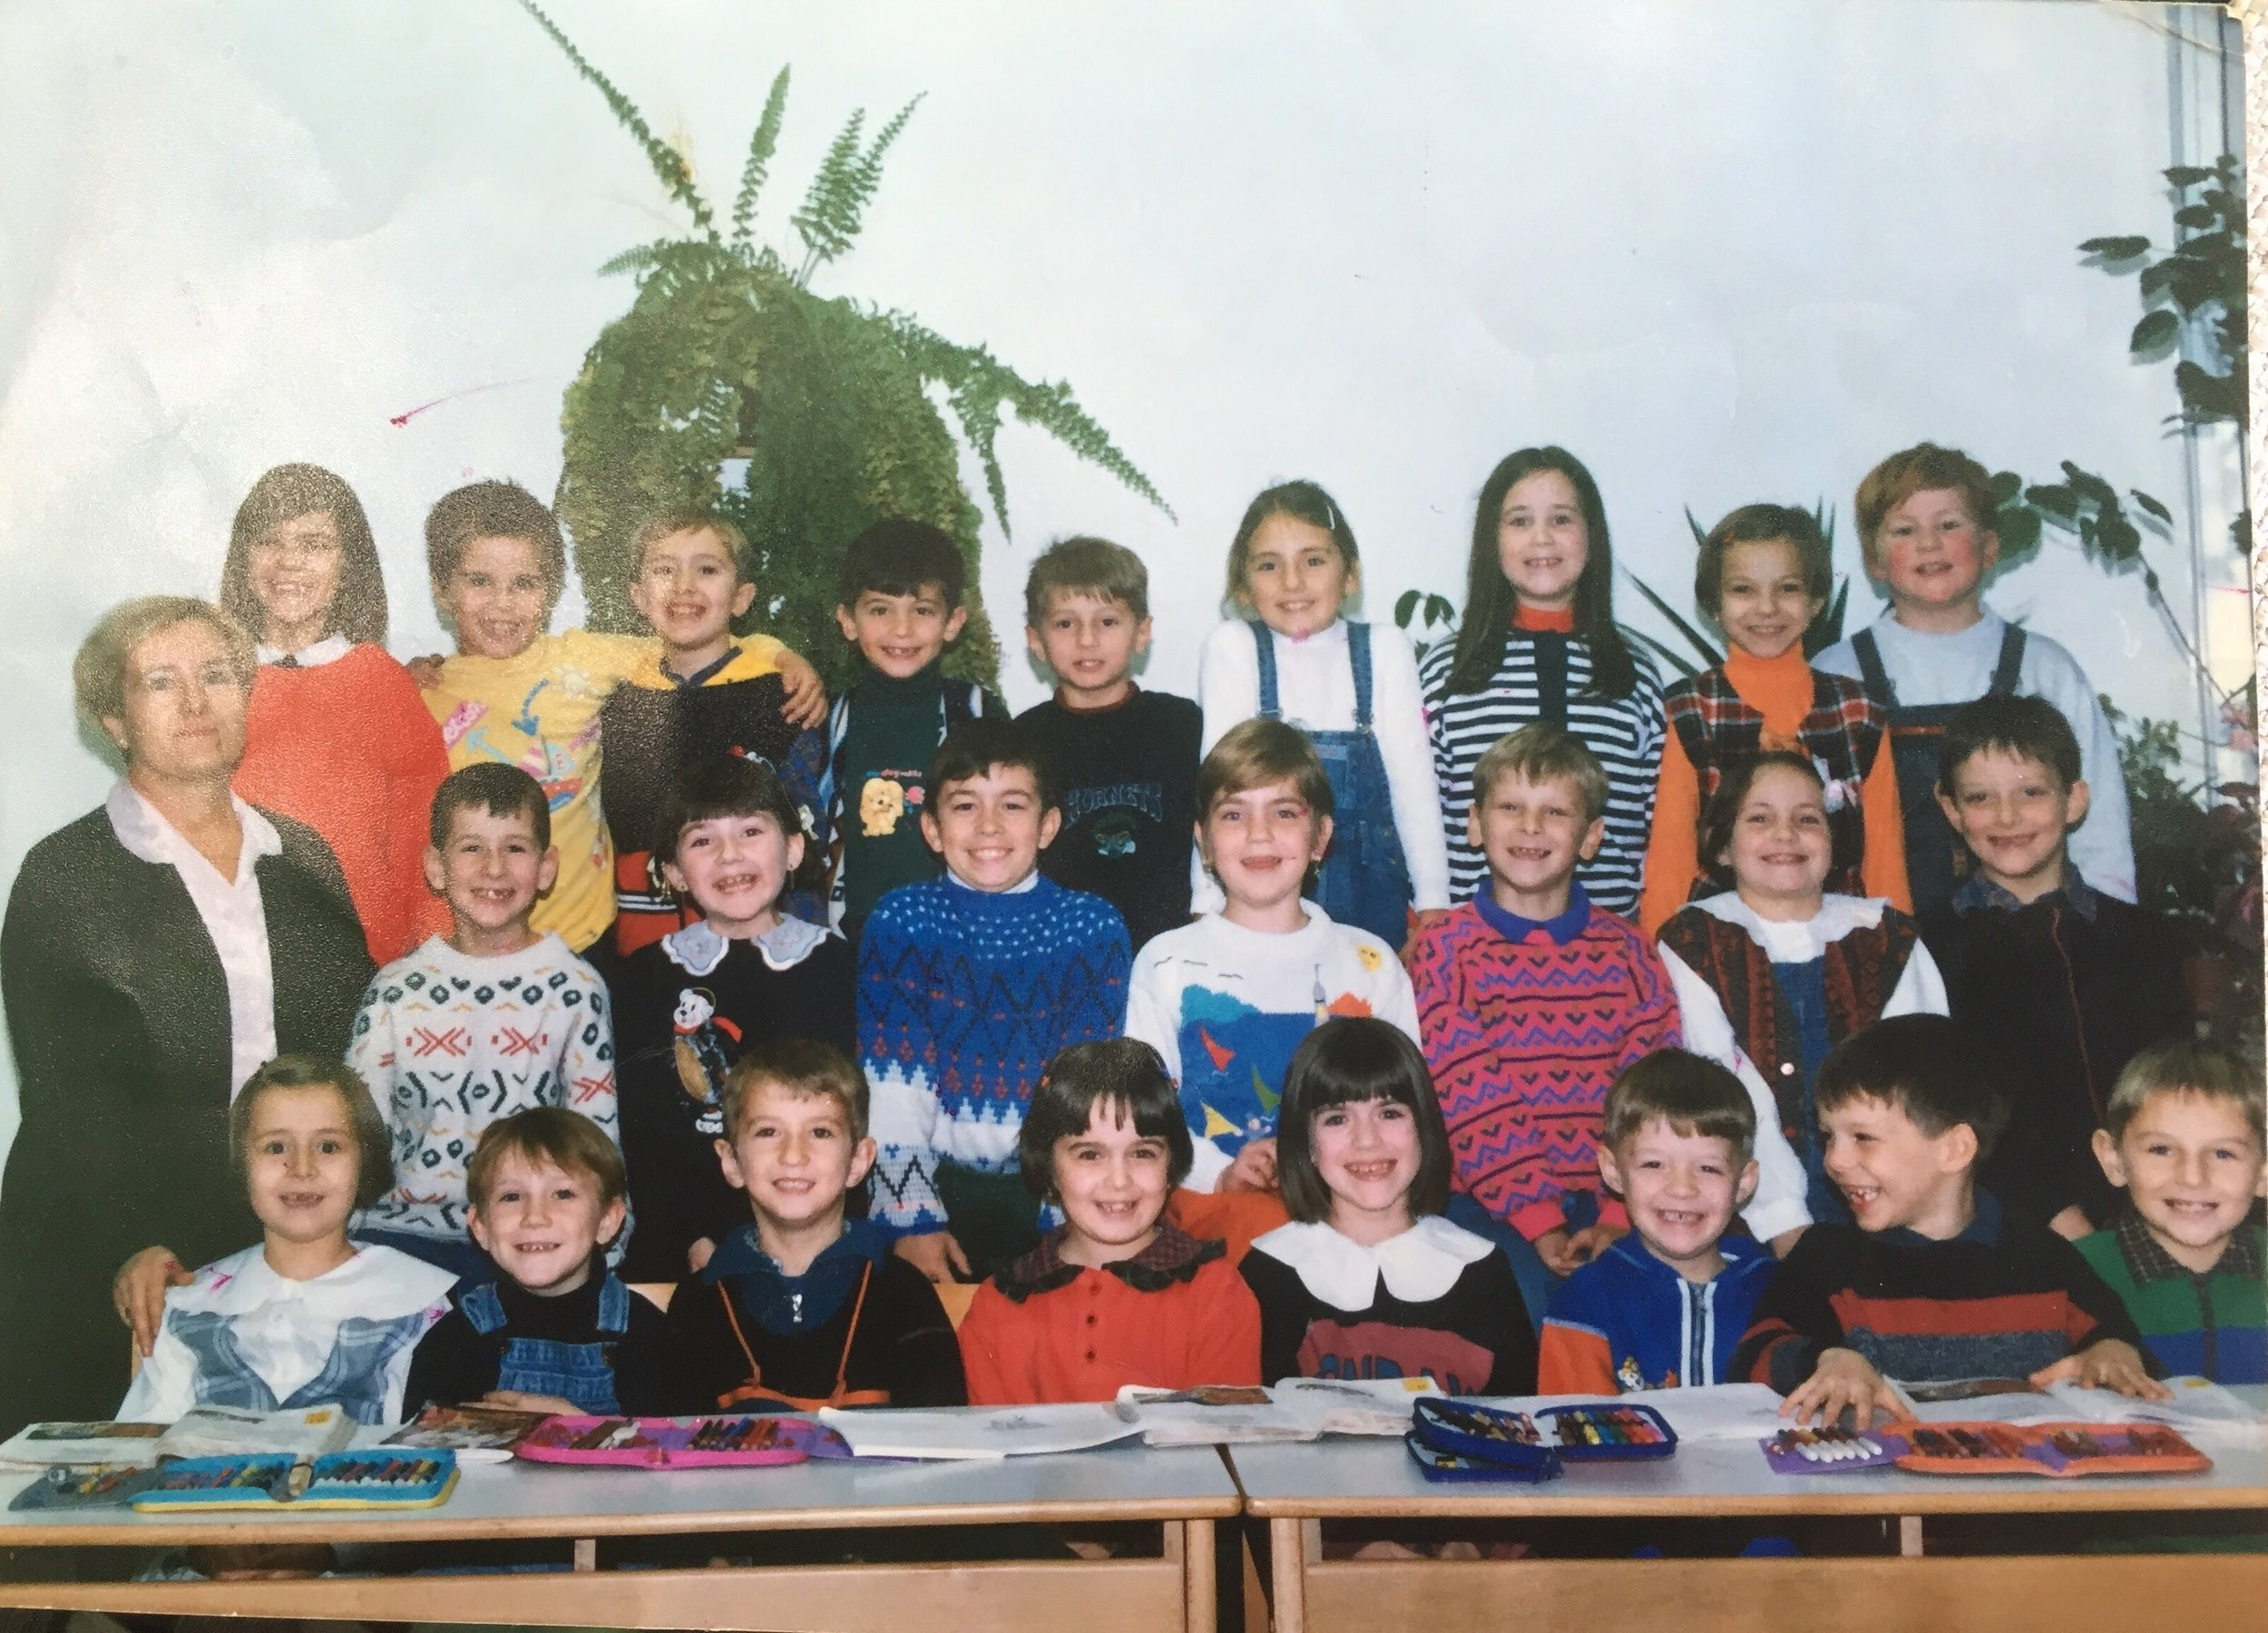 Can you spot me?